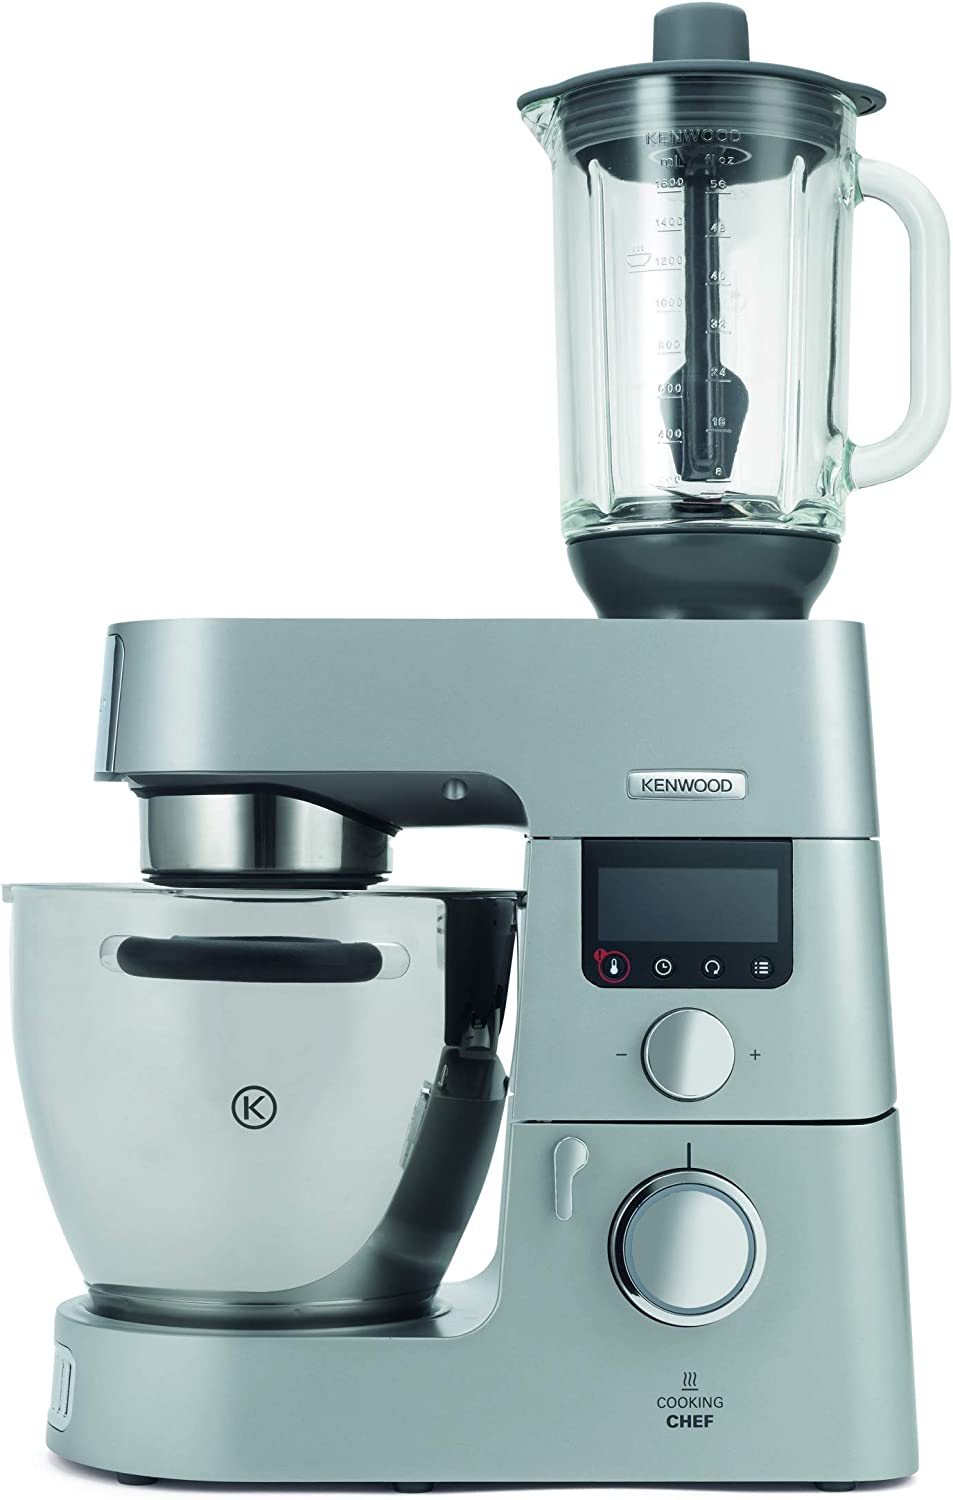 Kenwood KAH358GL Accesorio Batidora de vaso Thermoresist compatible con Robots de Cocina Kenwood Chef y Major, 1.6 L, transparente y negro: Amazon.es: Hogar